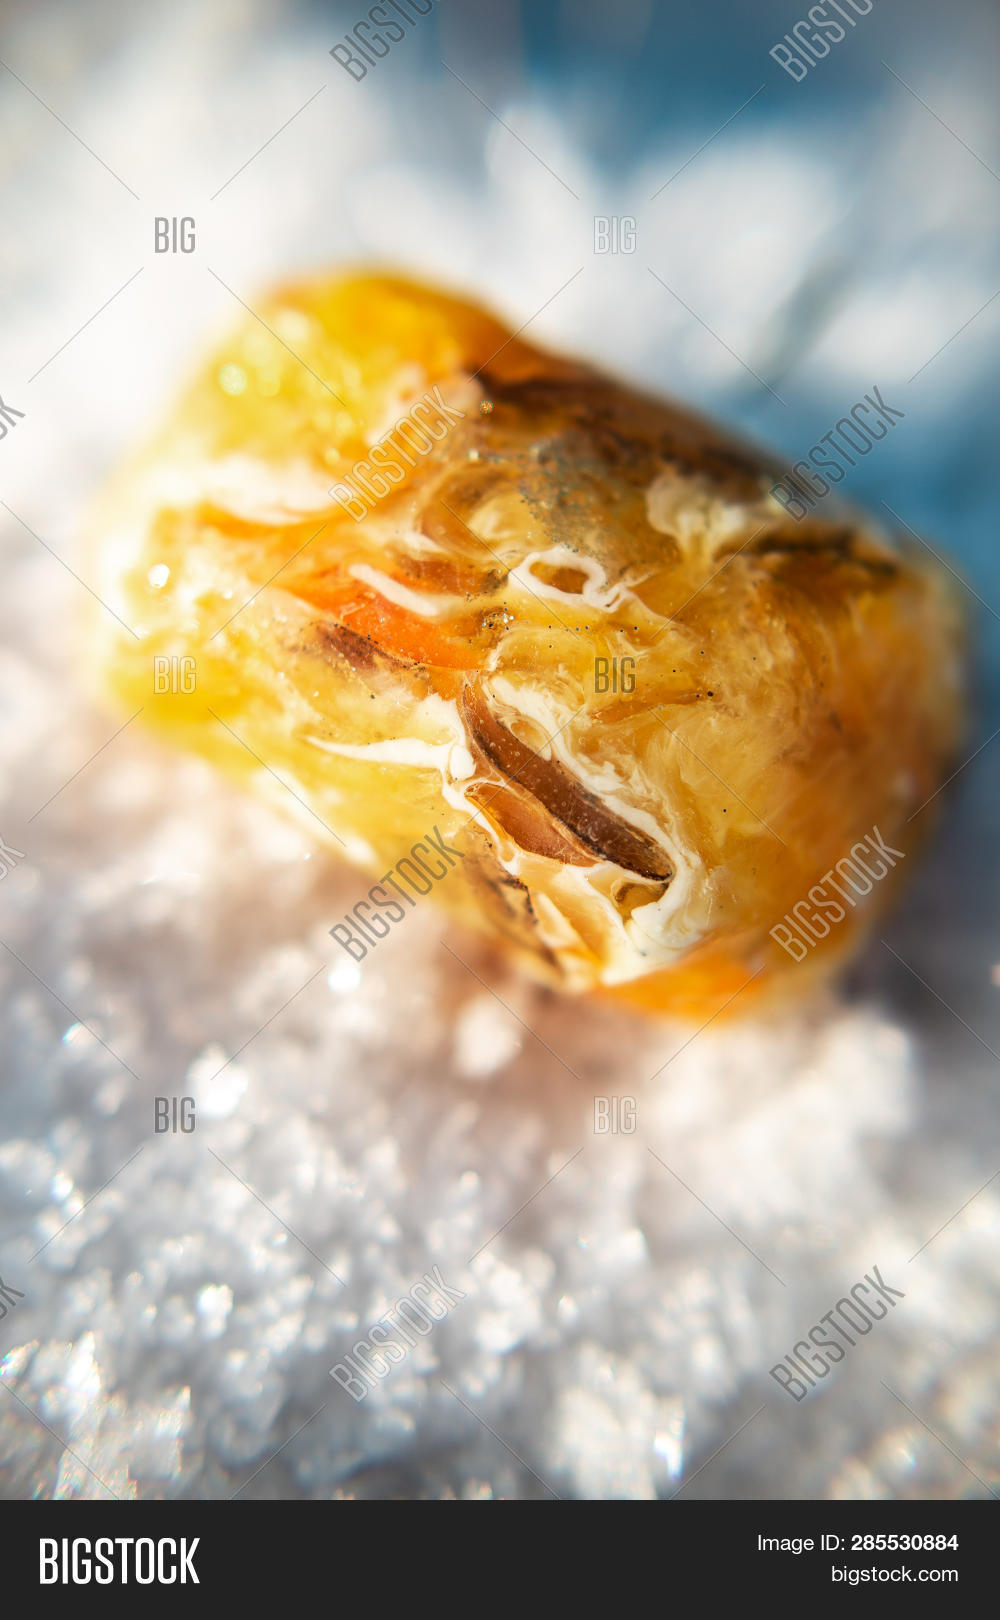 alternative,amber,aroma,aromatherapy,aromatic,background,bath,beauty,body,bright,care,clean,closeup,cold,contrast,cosmetics,fresh,freshness,handmade,healthy,homemade,hygiene,large,life,luxury,macro,medicine,natural,nature,nice,nobody,organic,piece,plant,pure,rustic,scented,sea,snow,soap,spa,stone,sunny,therapy,toiletries,treatment,unusual,white,winter,yellow